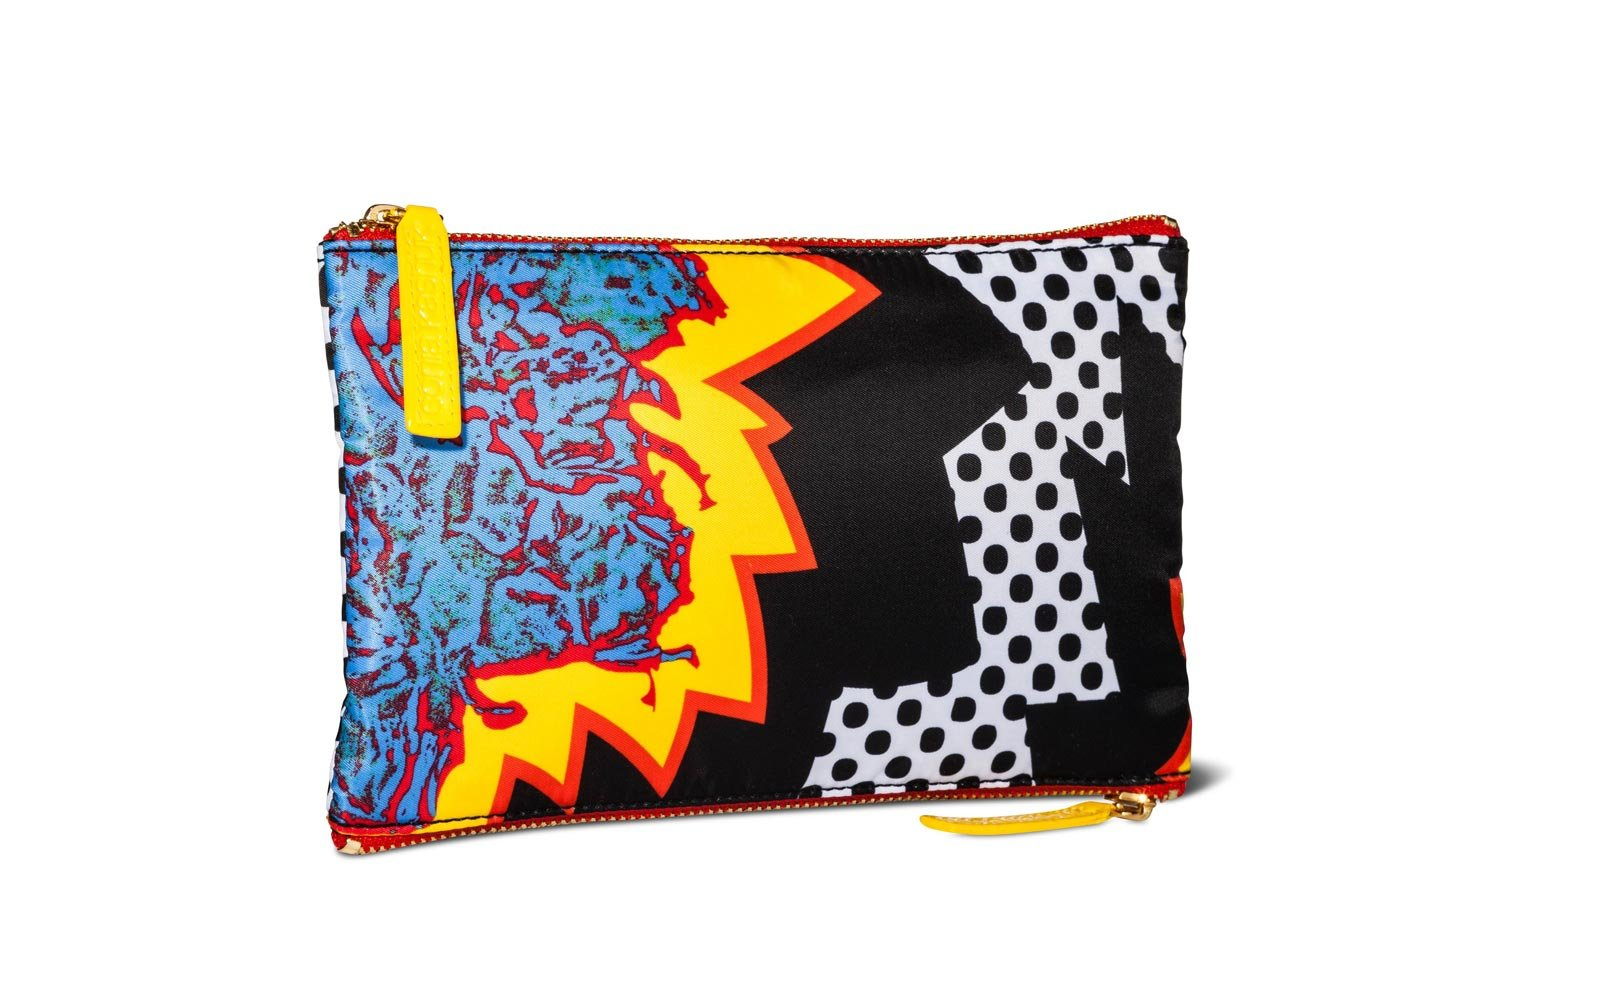 Sonia Kashuk Two-zip Cosmetic Bag